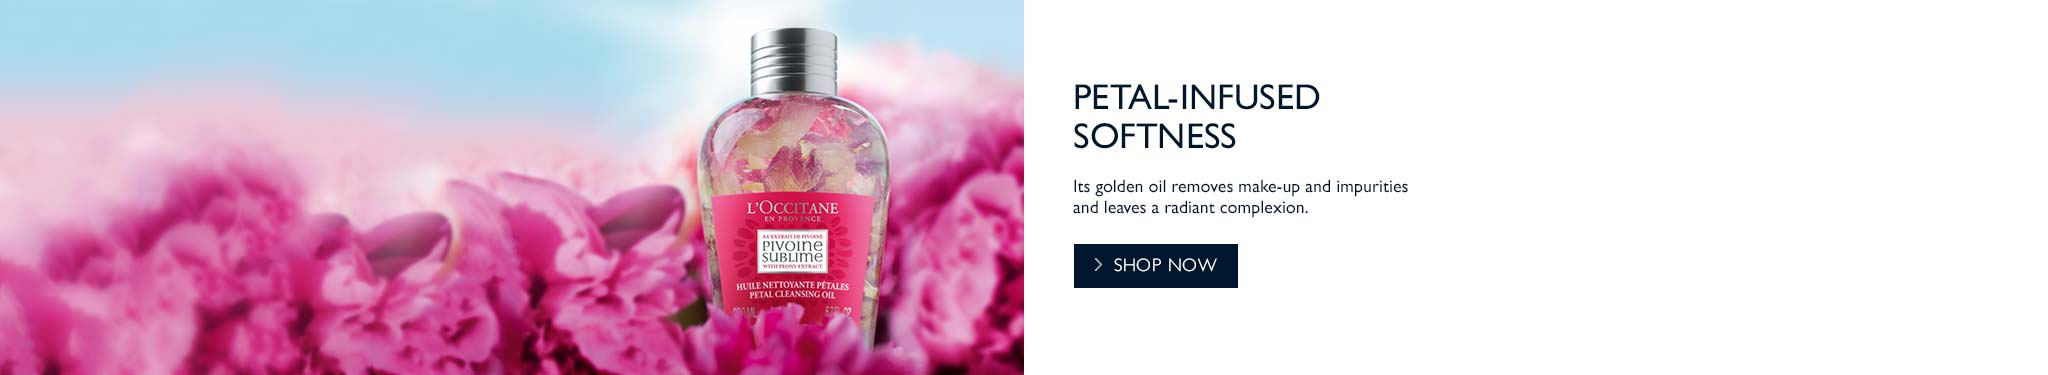 Petal-infused Softness |NEW Pivoine Sublime Petal Cleansing Oil